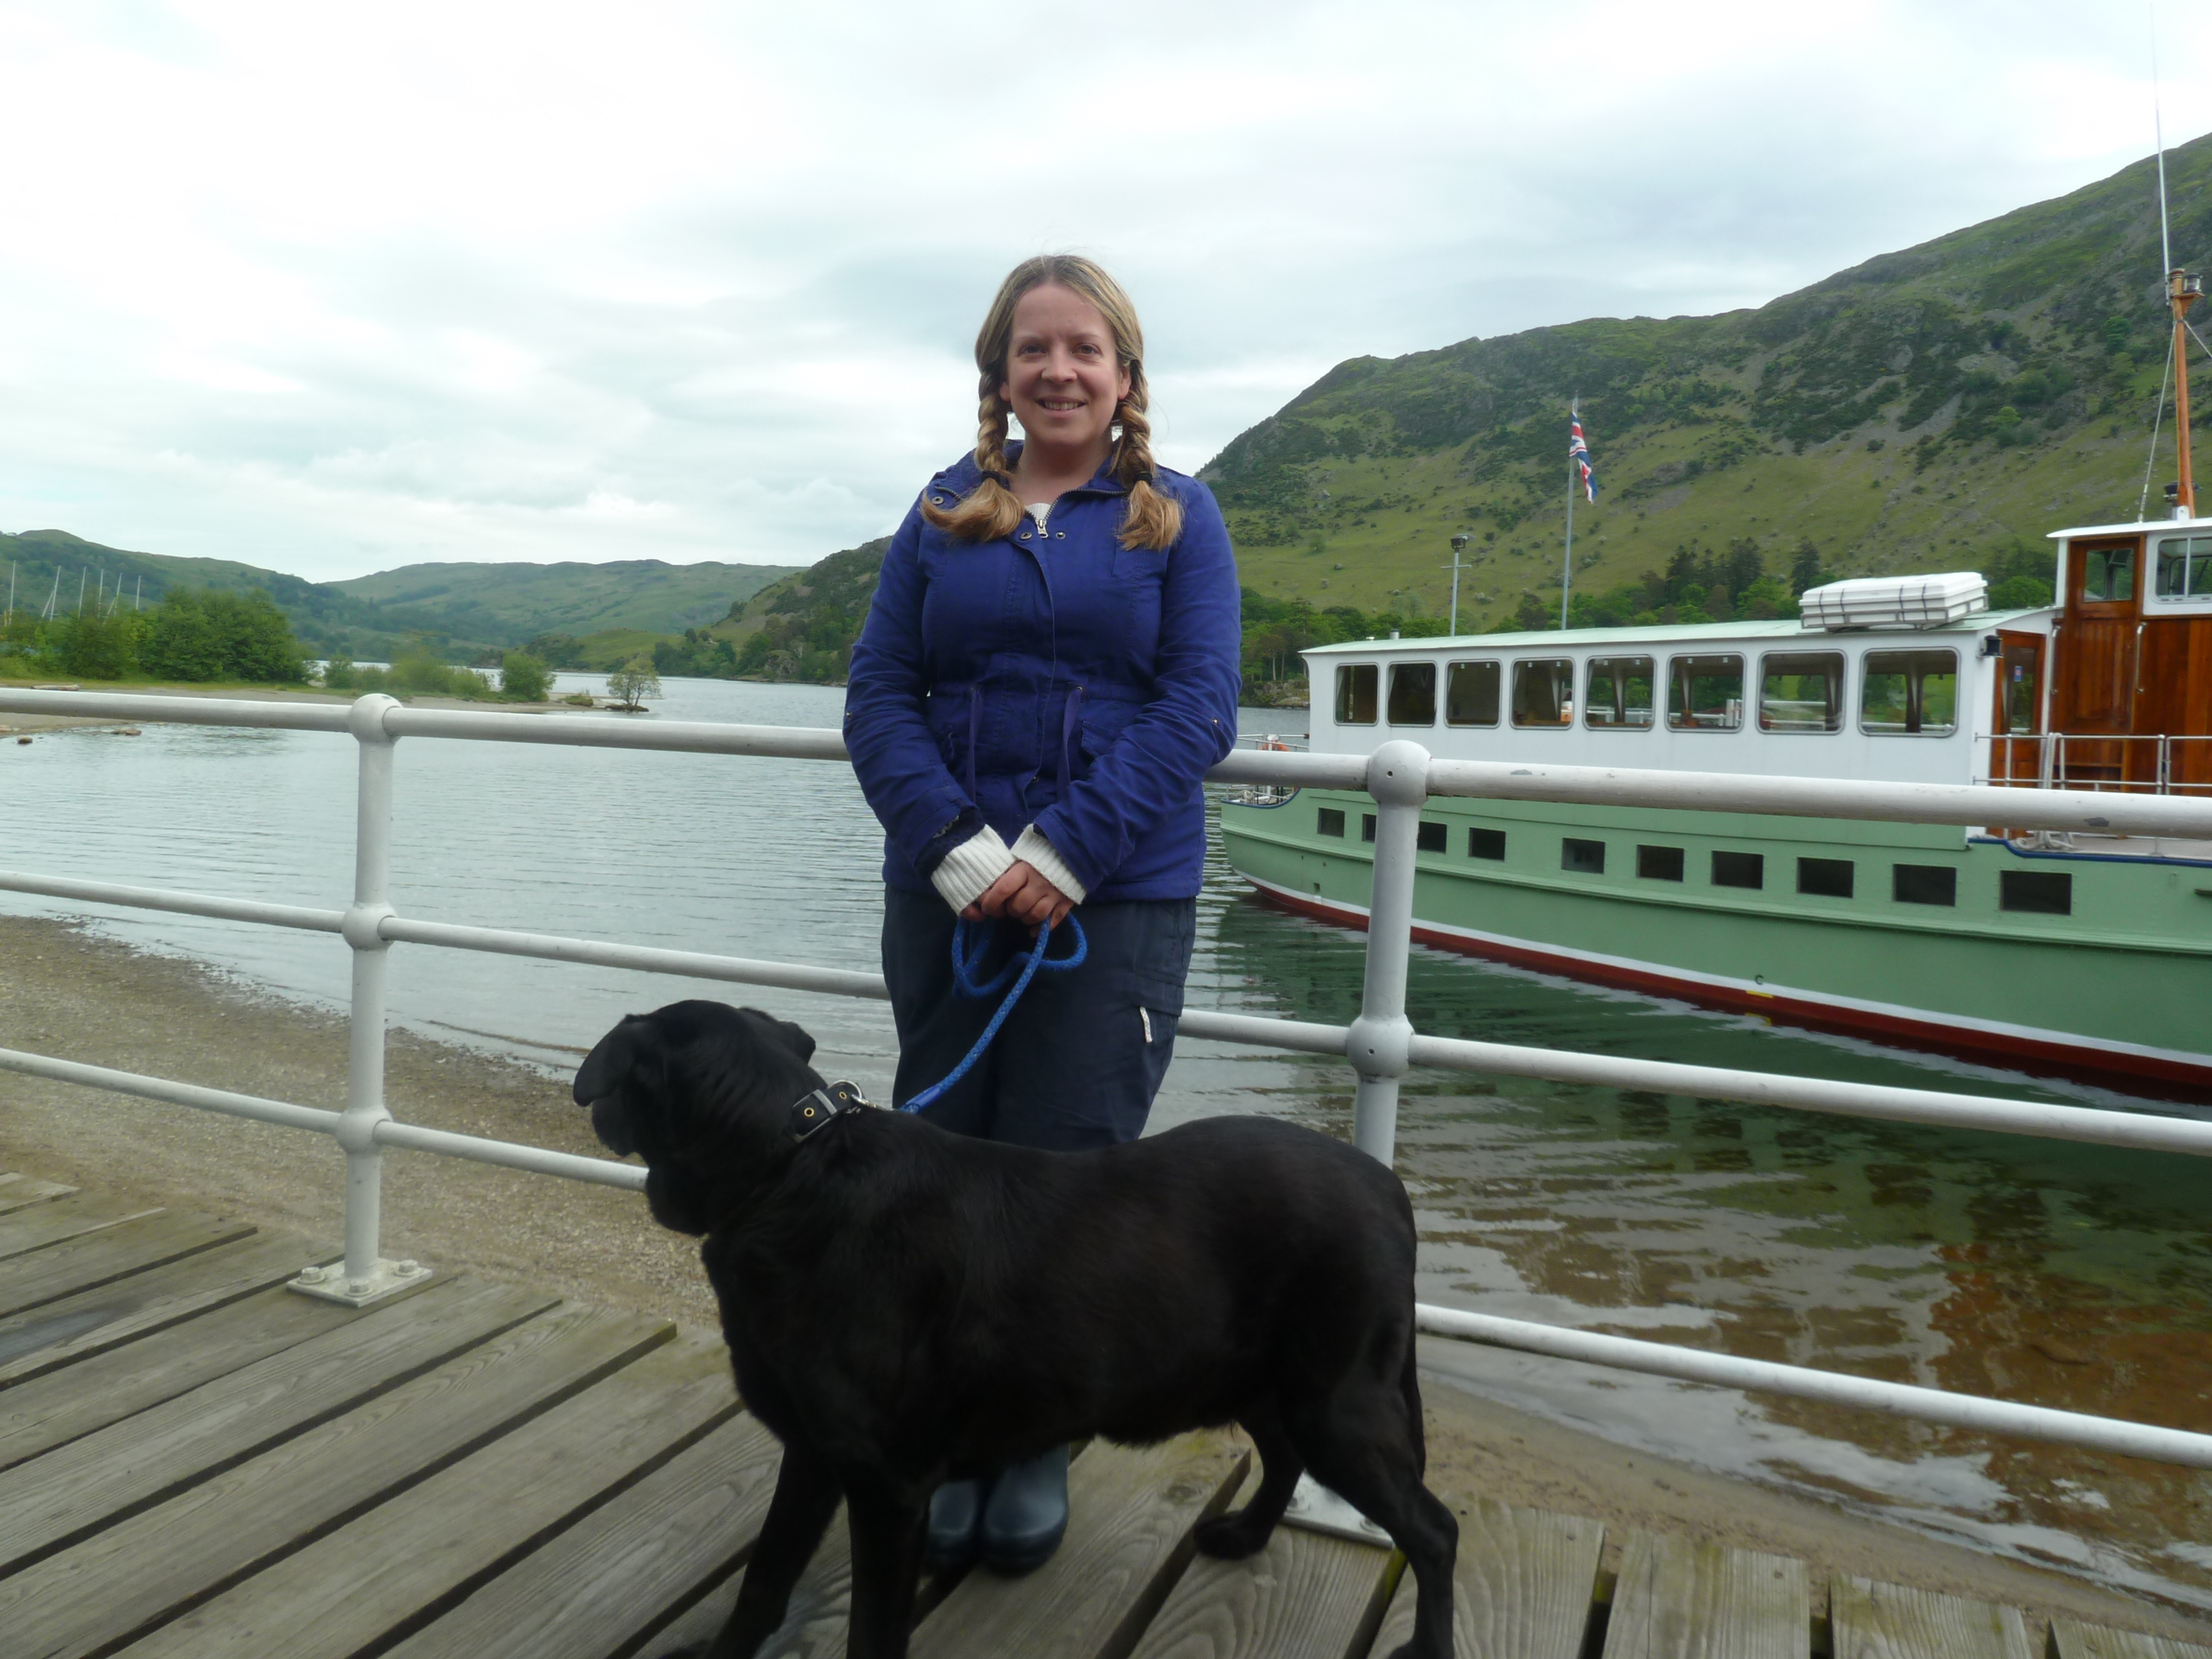 Waiting to board the steamer at Glenridding.